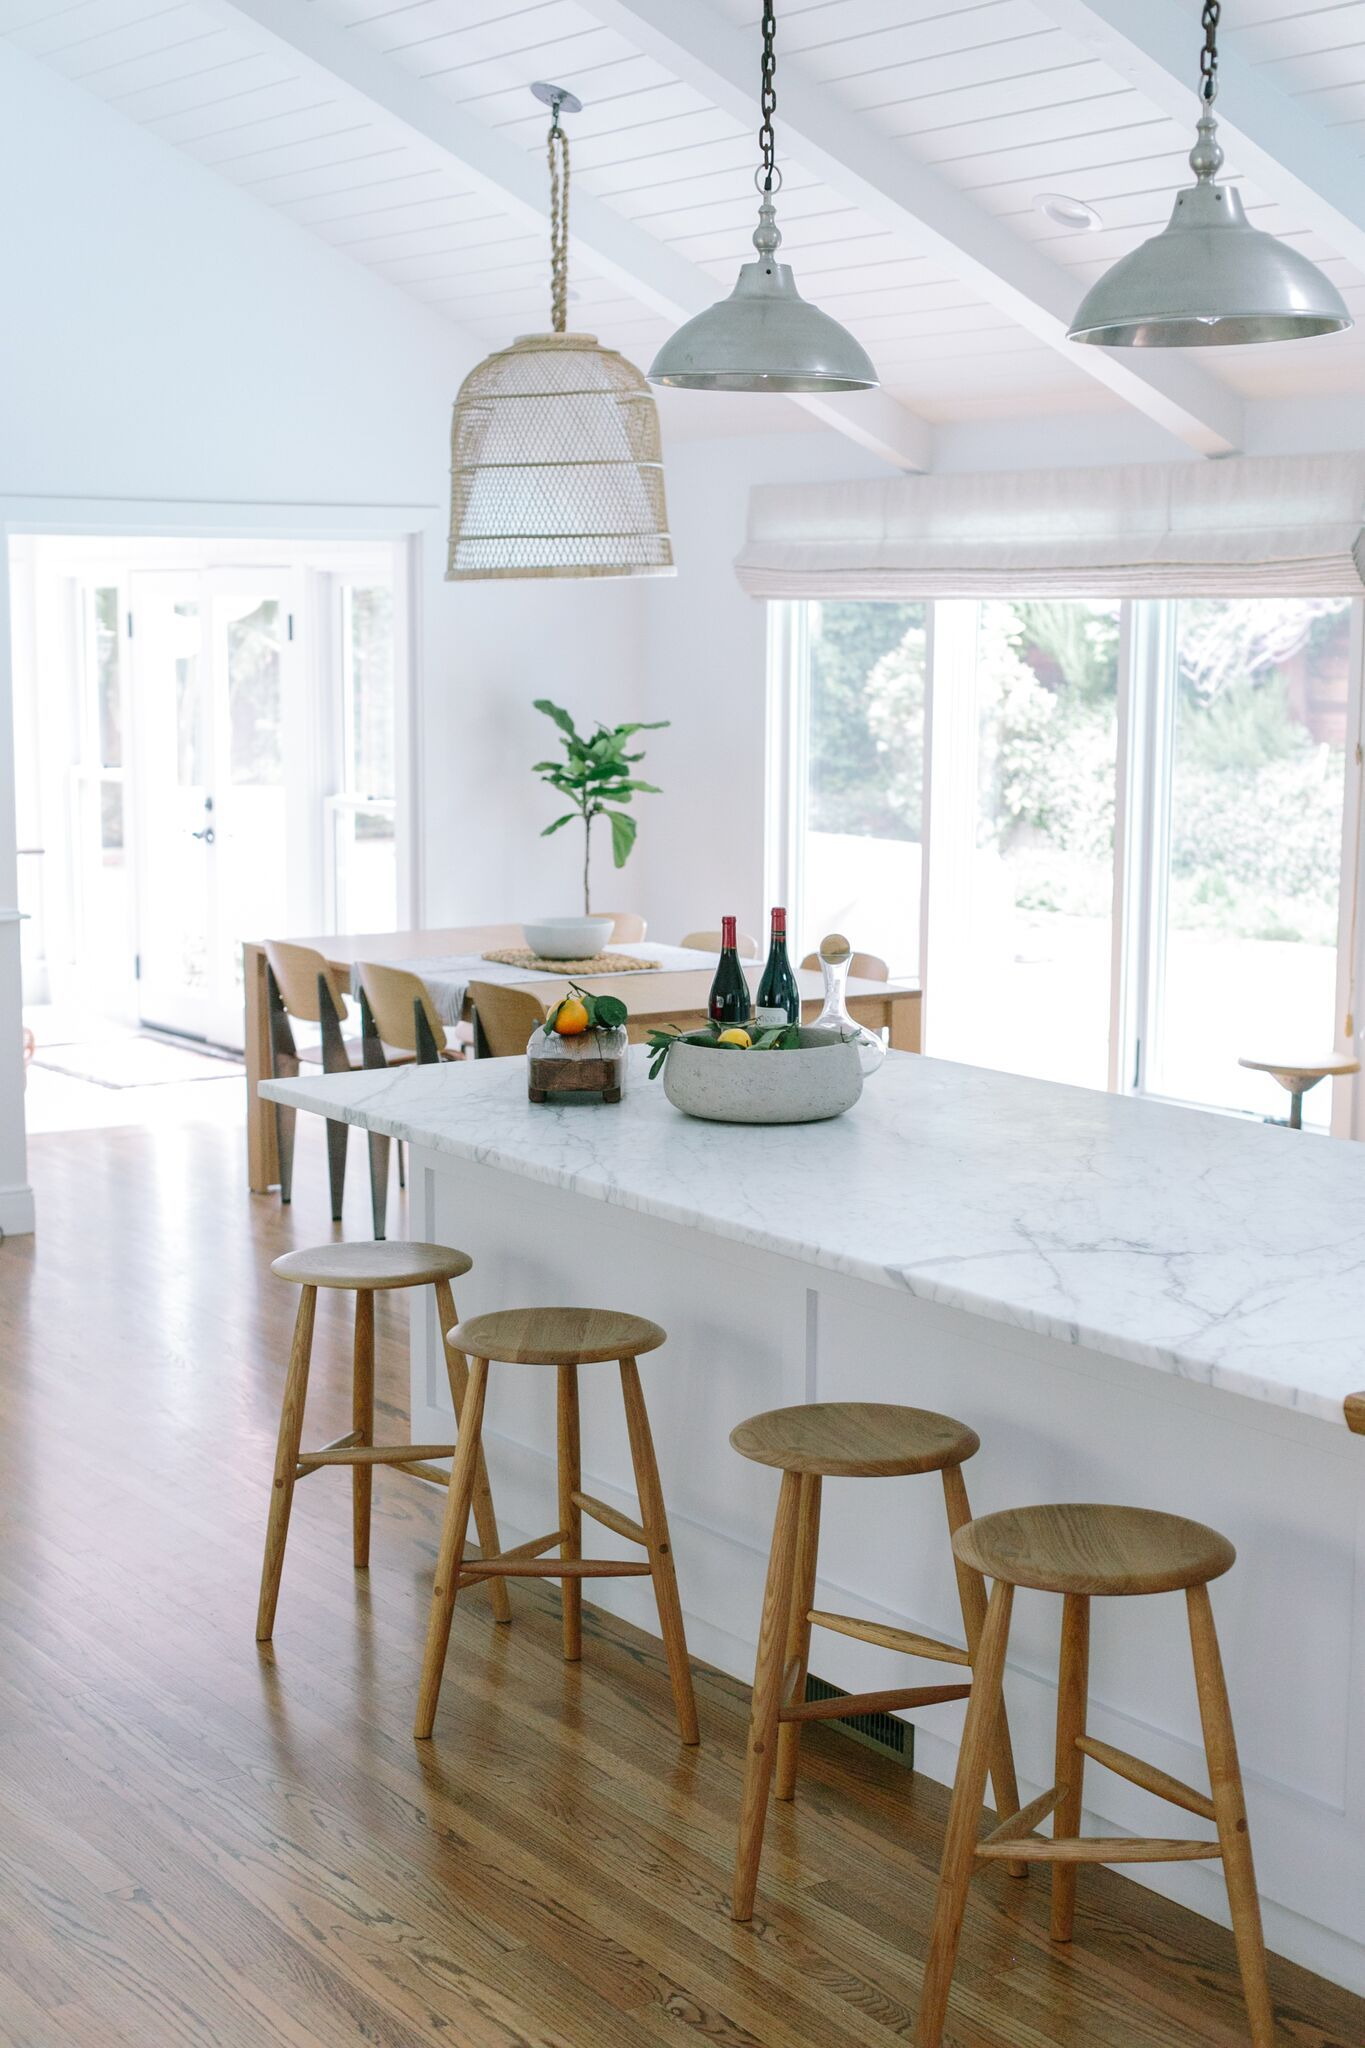 Maria 5 Light Kitchen Island Pendant A Fresh Take On Farmhouse In Southern California | Kitchen